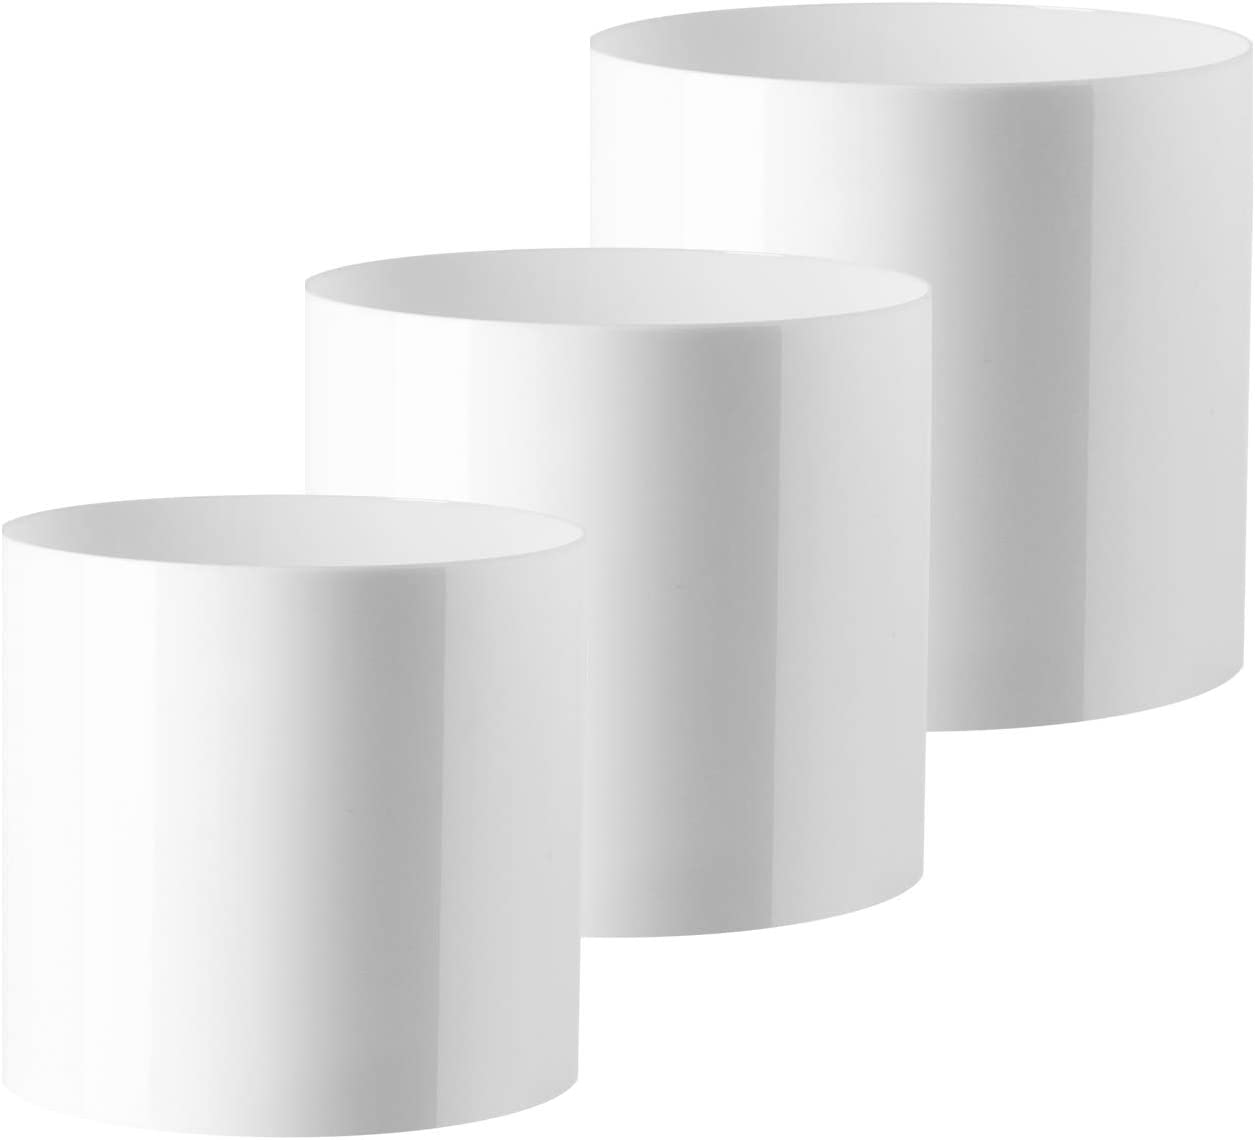 "Royal Imports Flower Acrylic Vases Cylinders - Decorative Centerpiece Display for Home or Wedding - Non Breakable Plastic, Set of 3 (4"", 5"", 6"") - White"